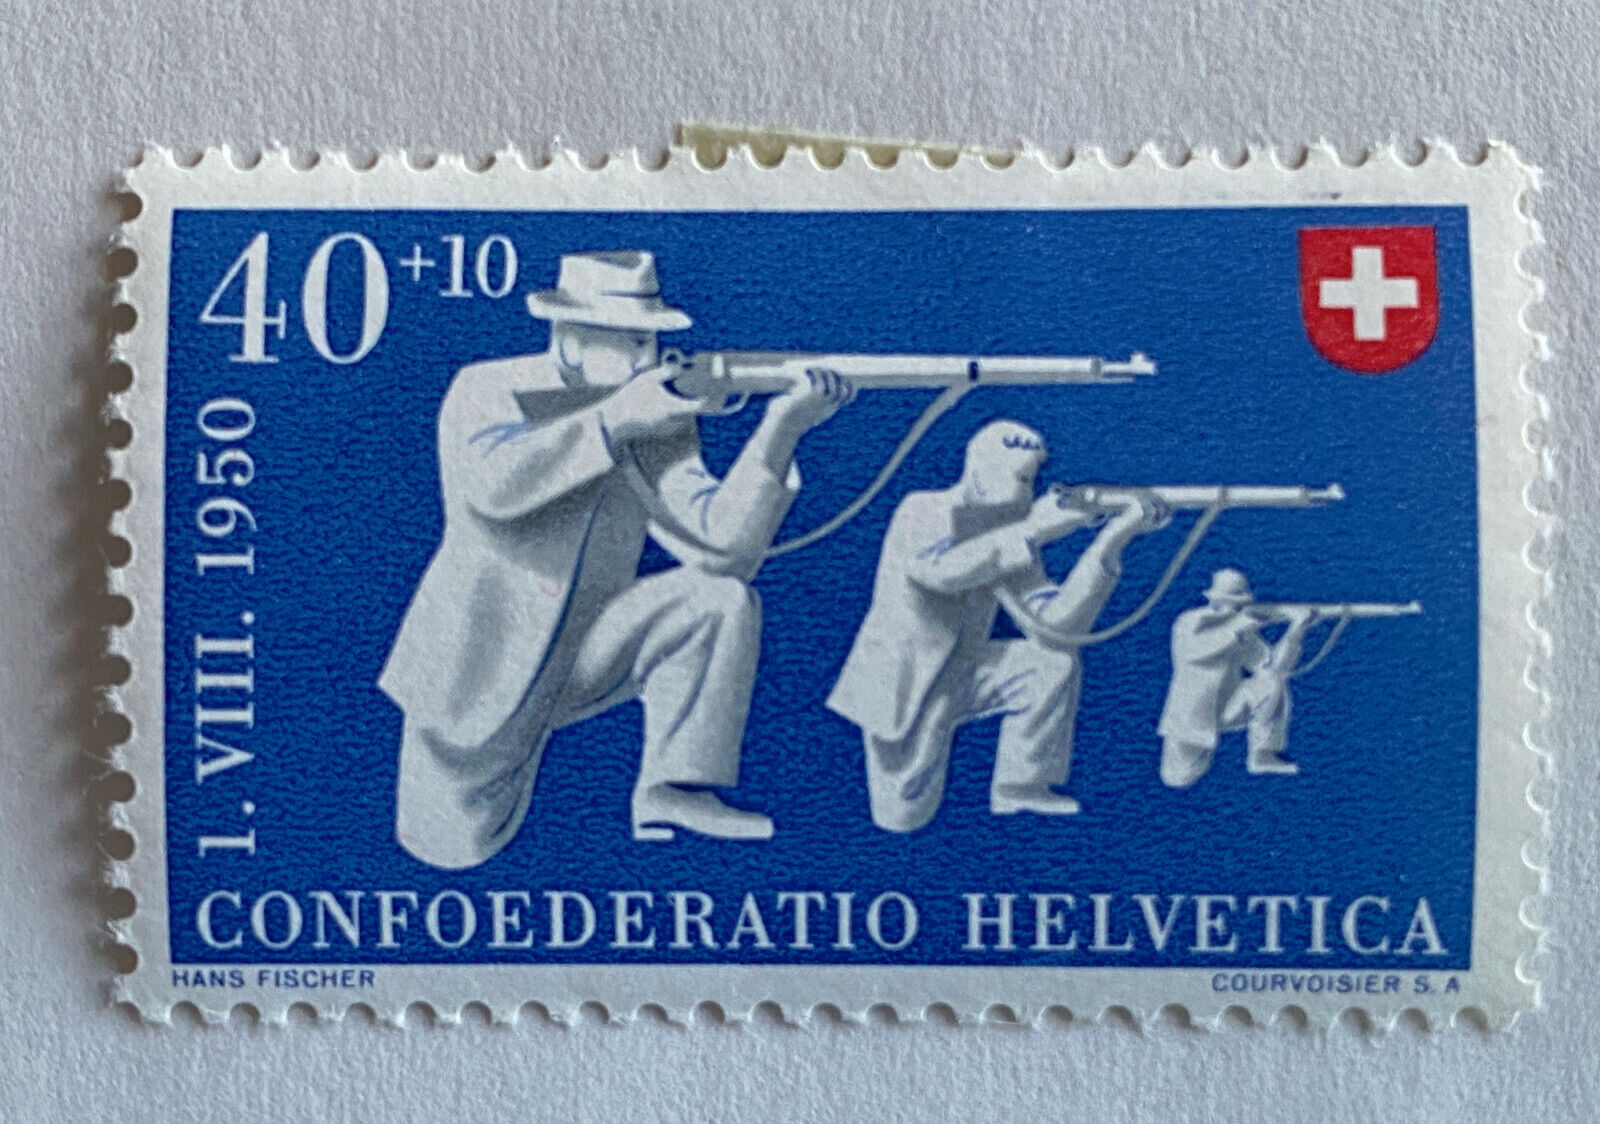 1950 Switzerland Stamps Sc. B201-B205 Confederation Helvetica - Set Of 5 Stamps - $5.00